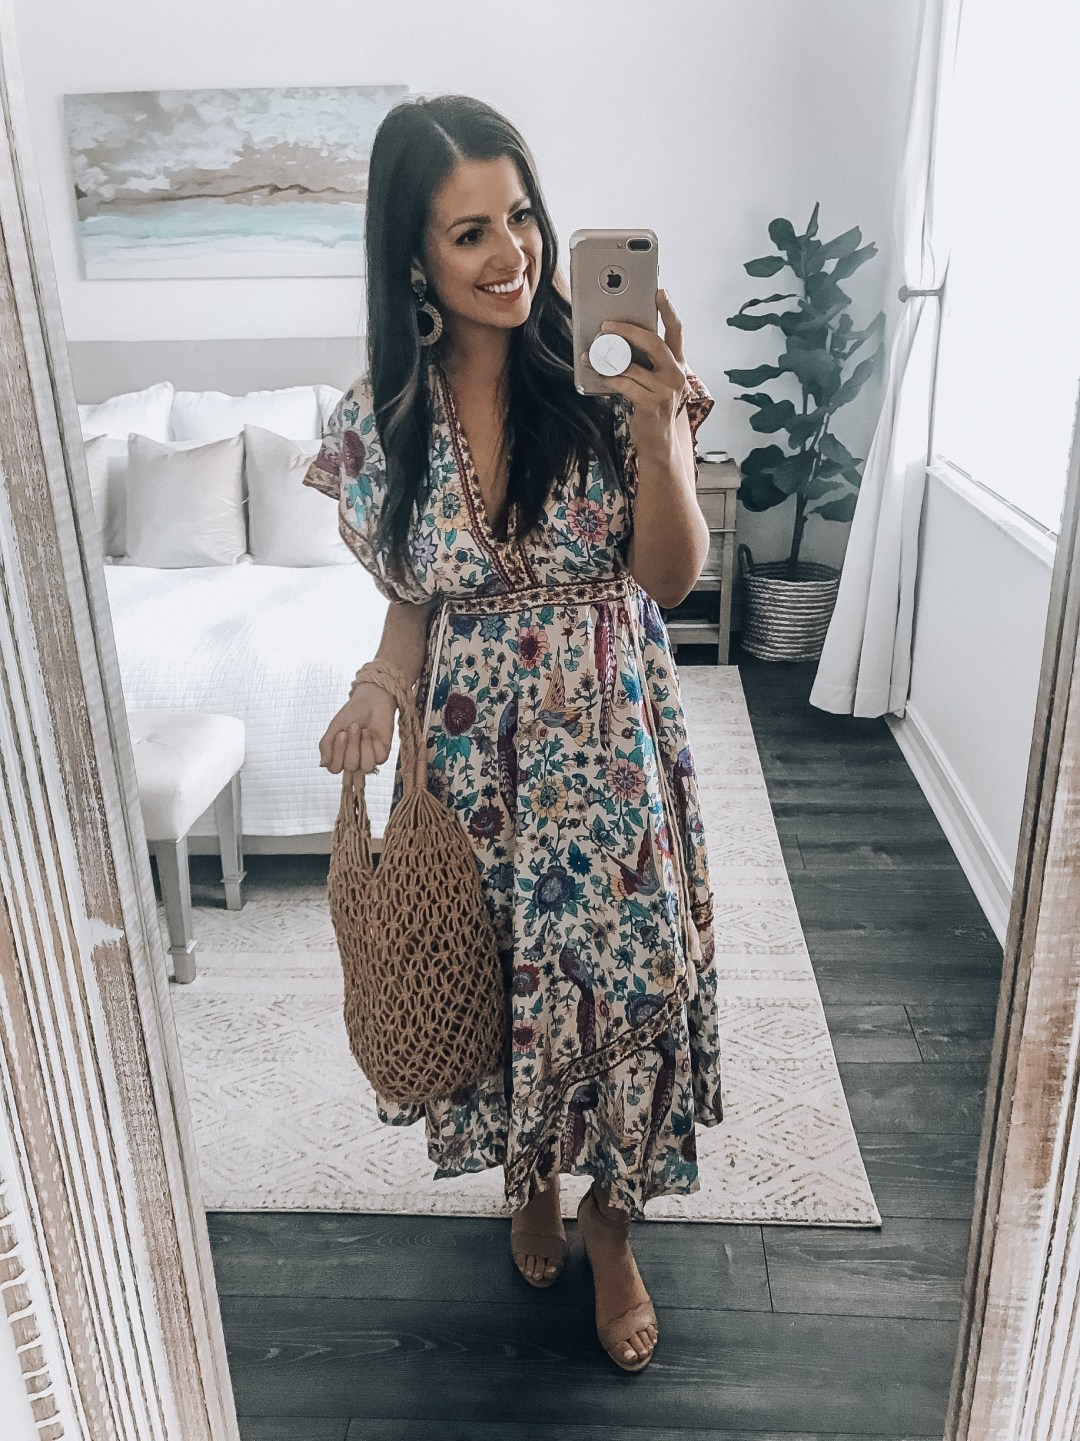 Amazon Fashion boho dress, Amazon Fashion haul